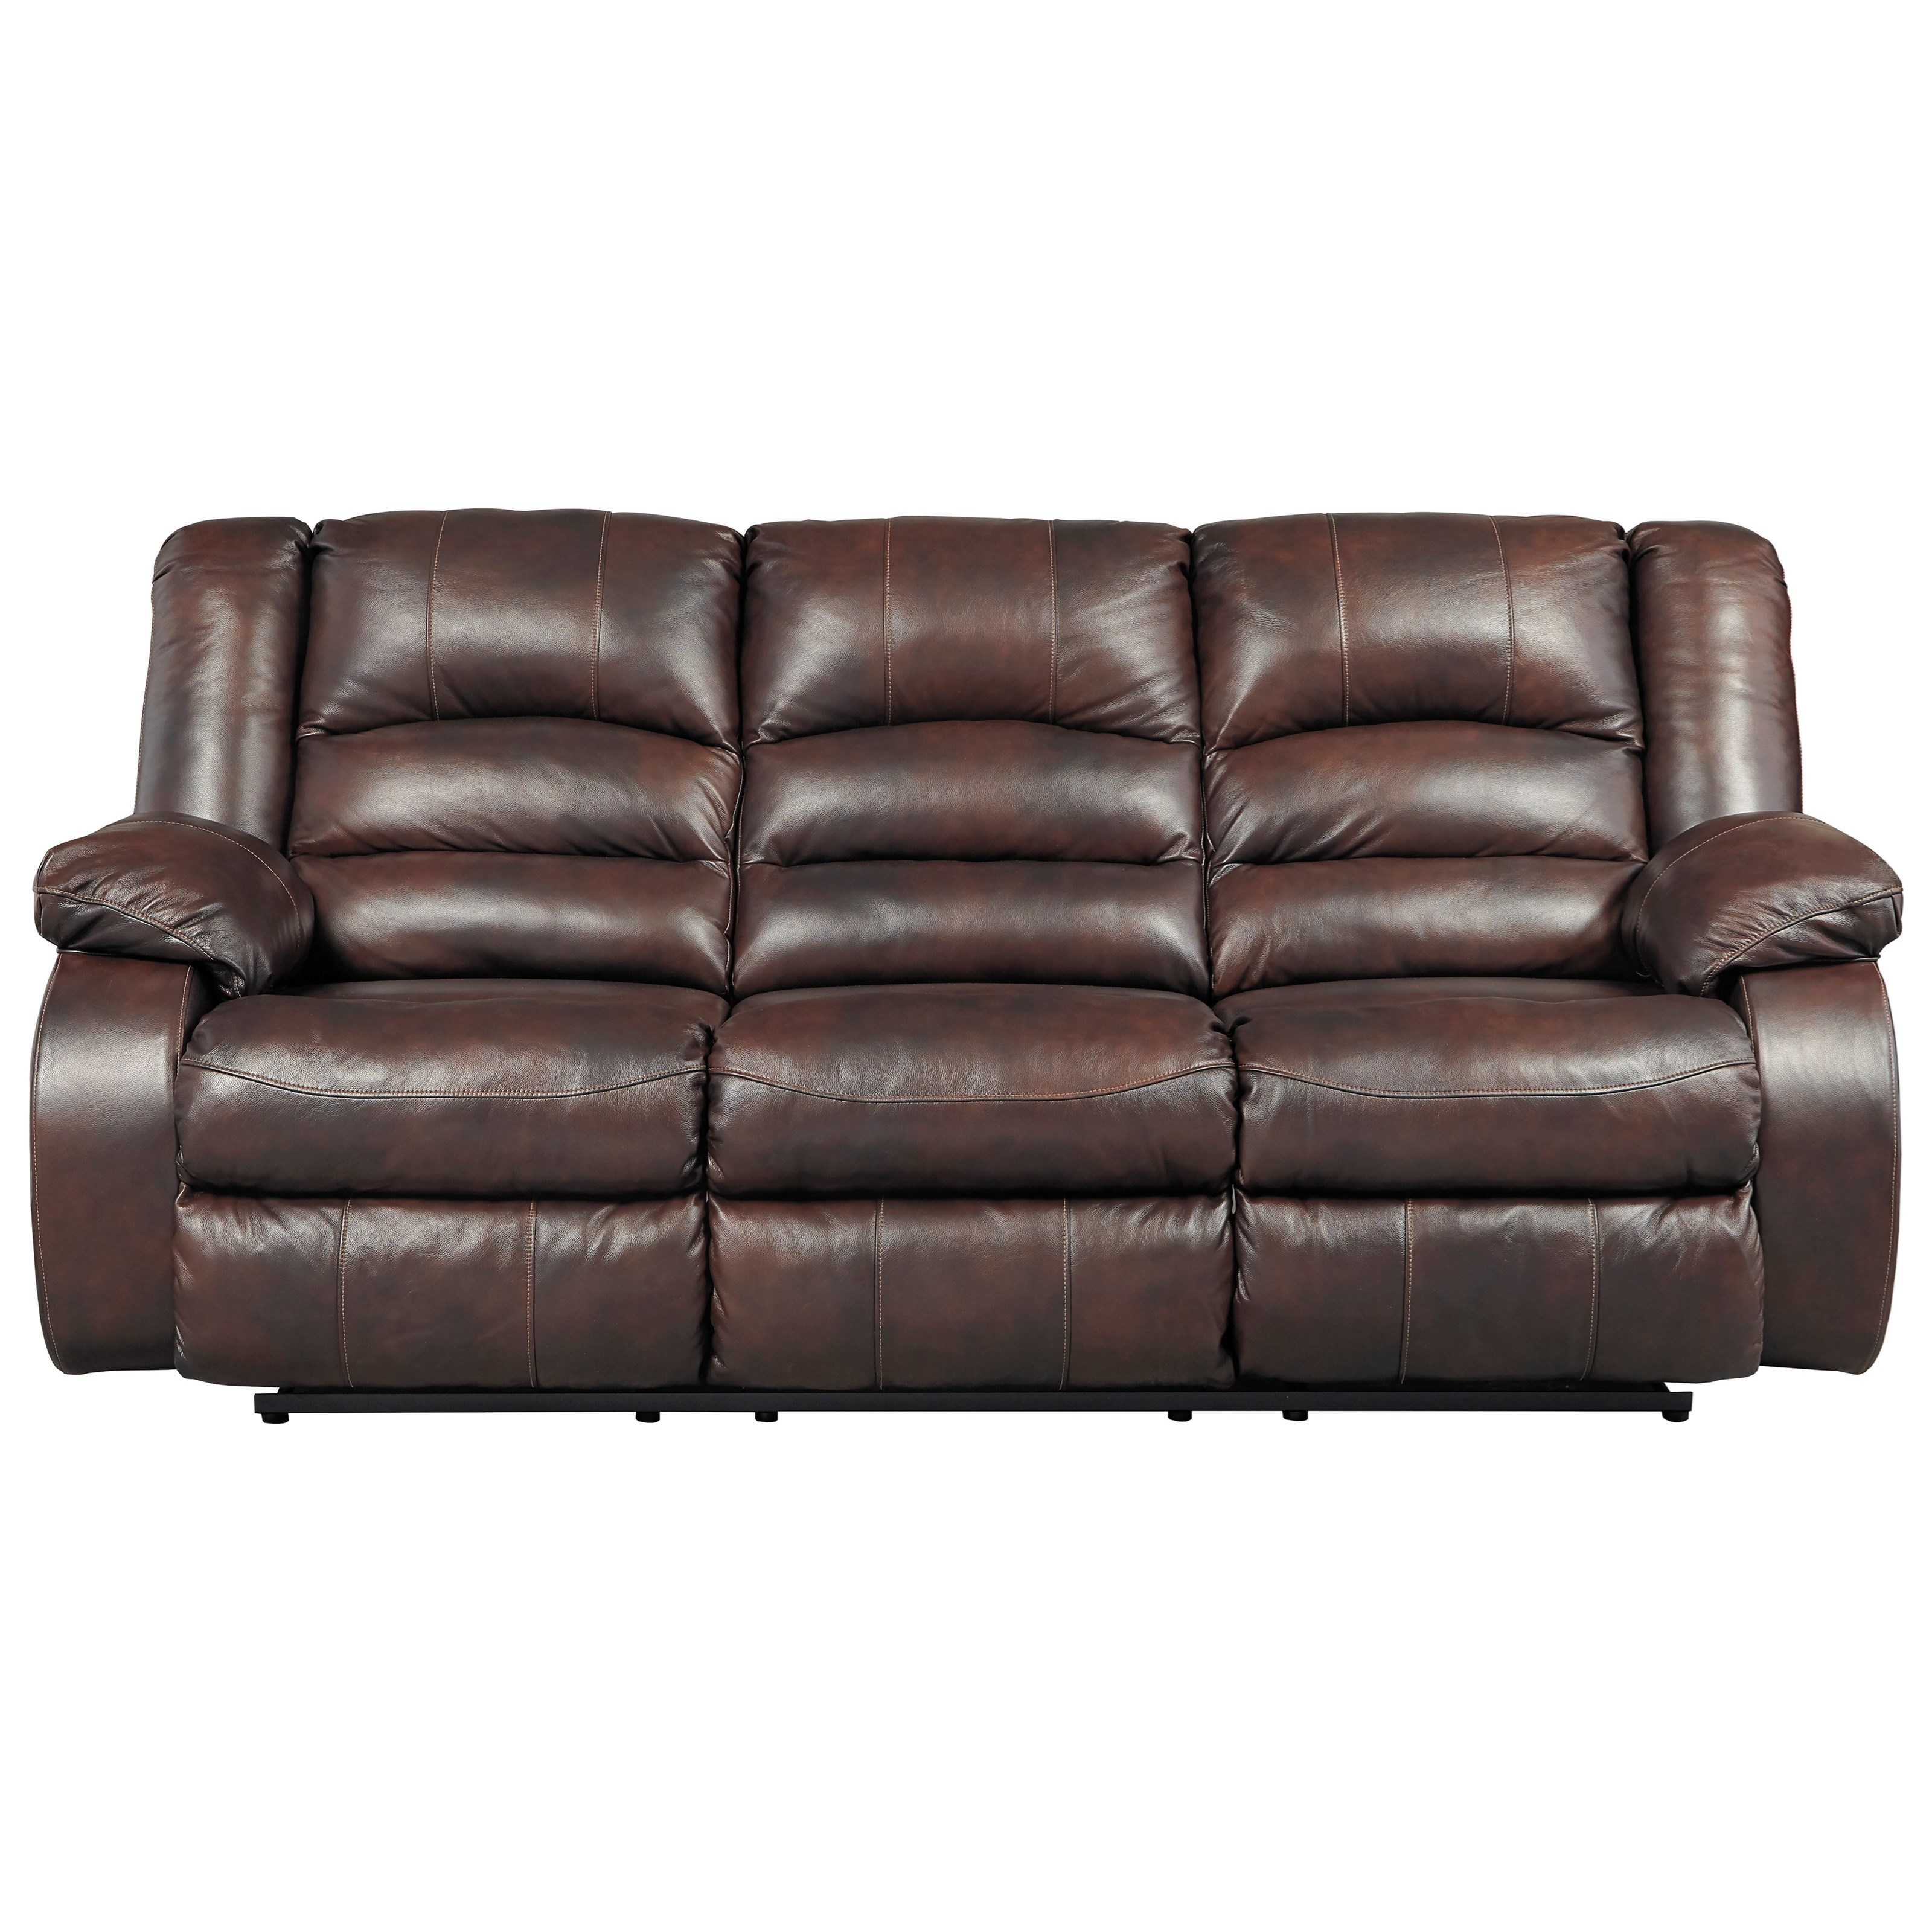 Signature Design by Ashley Levelland Reclining Power Sofa - Item Number: 1700187